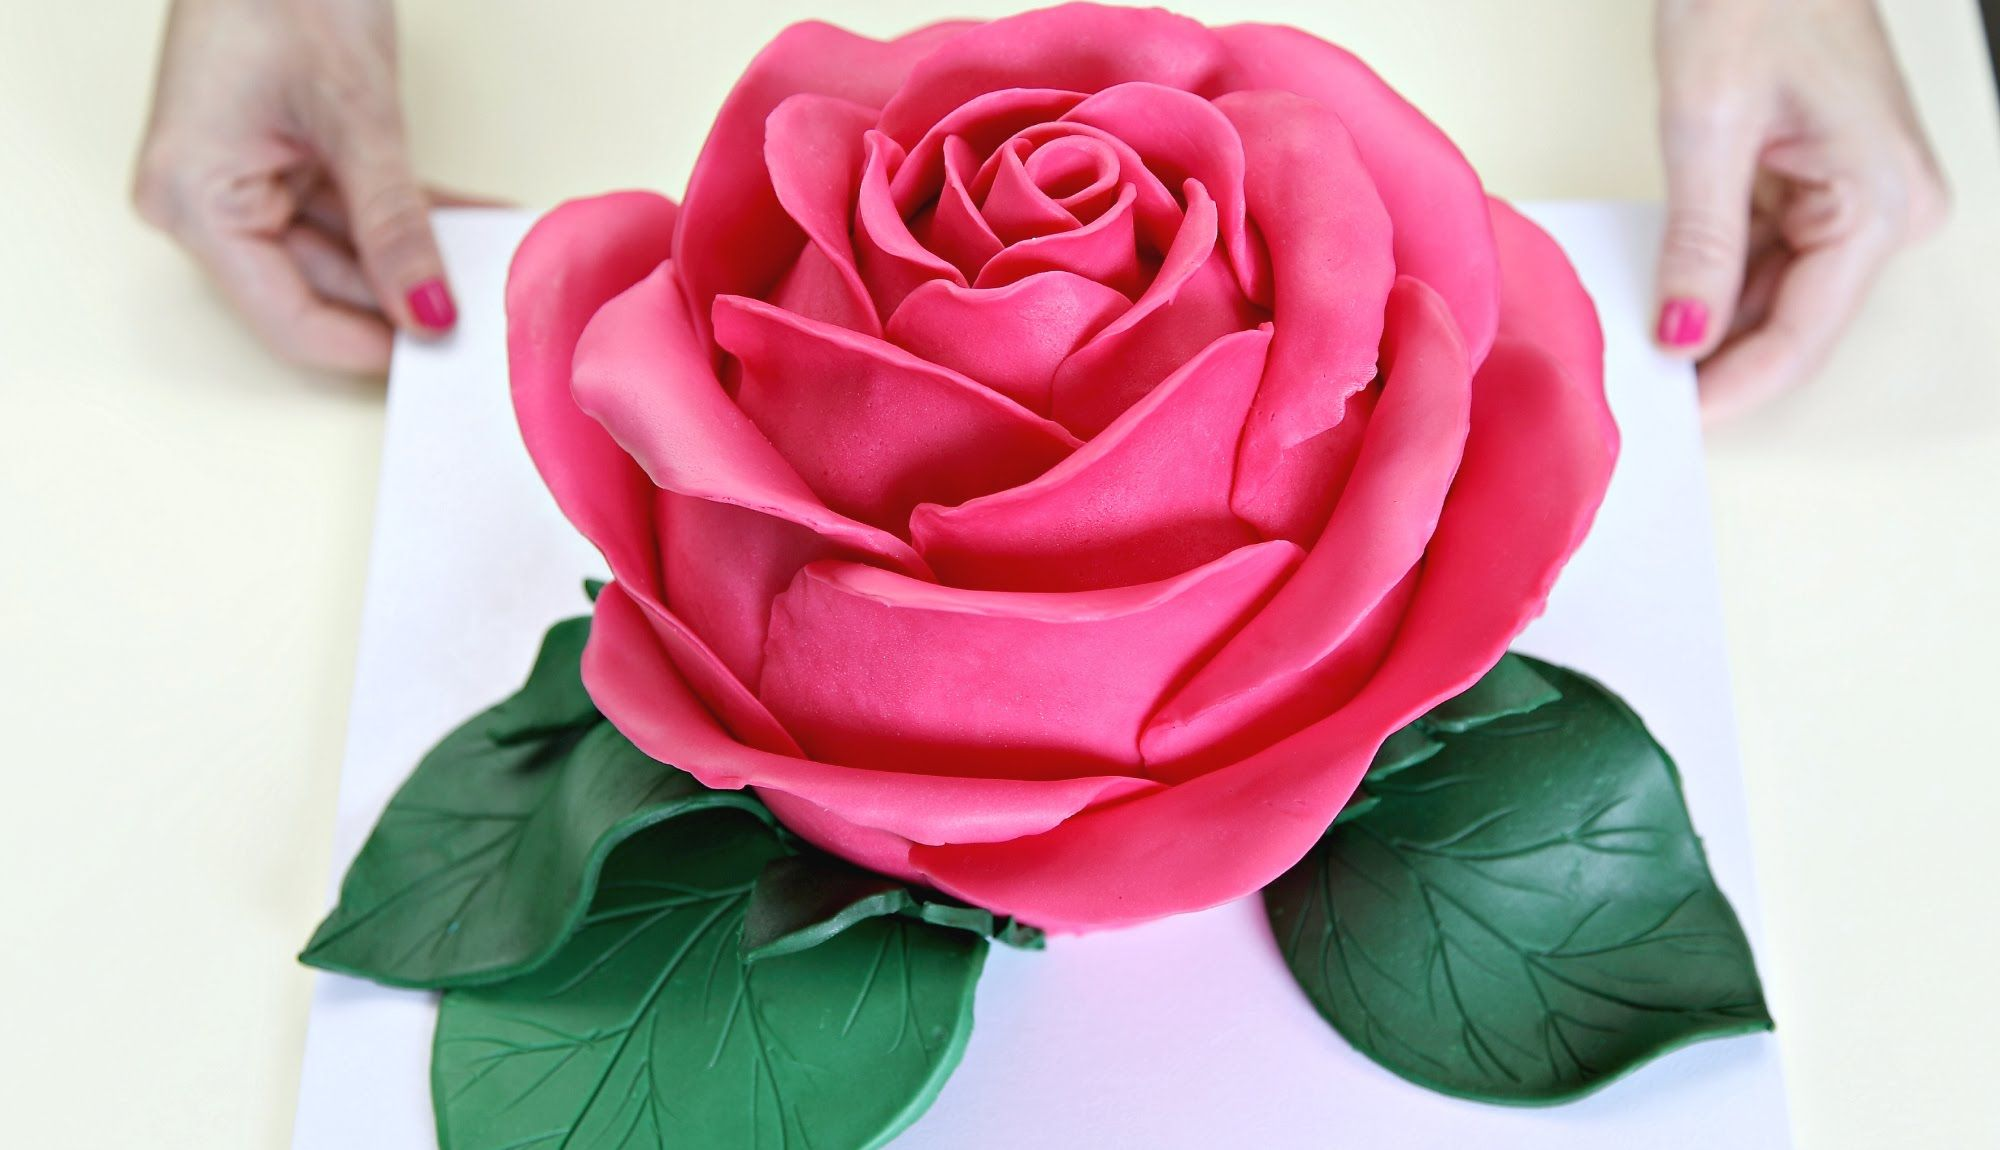 Ginormous Sculpted Rose Cake Cake Style Pink Rose Cake Rose Cake Tutorial Rose Cake